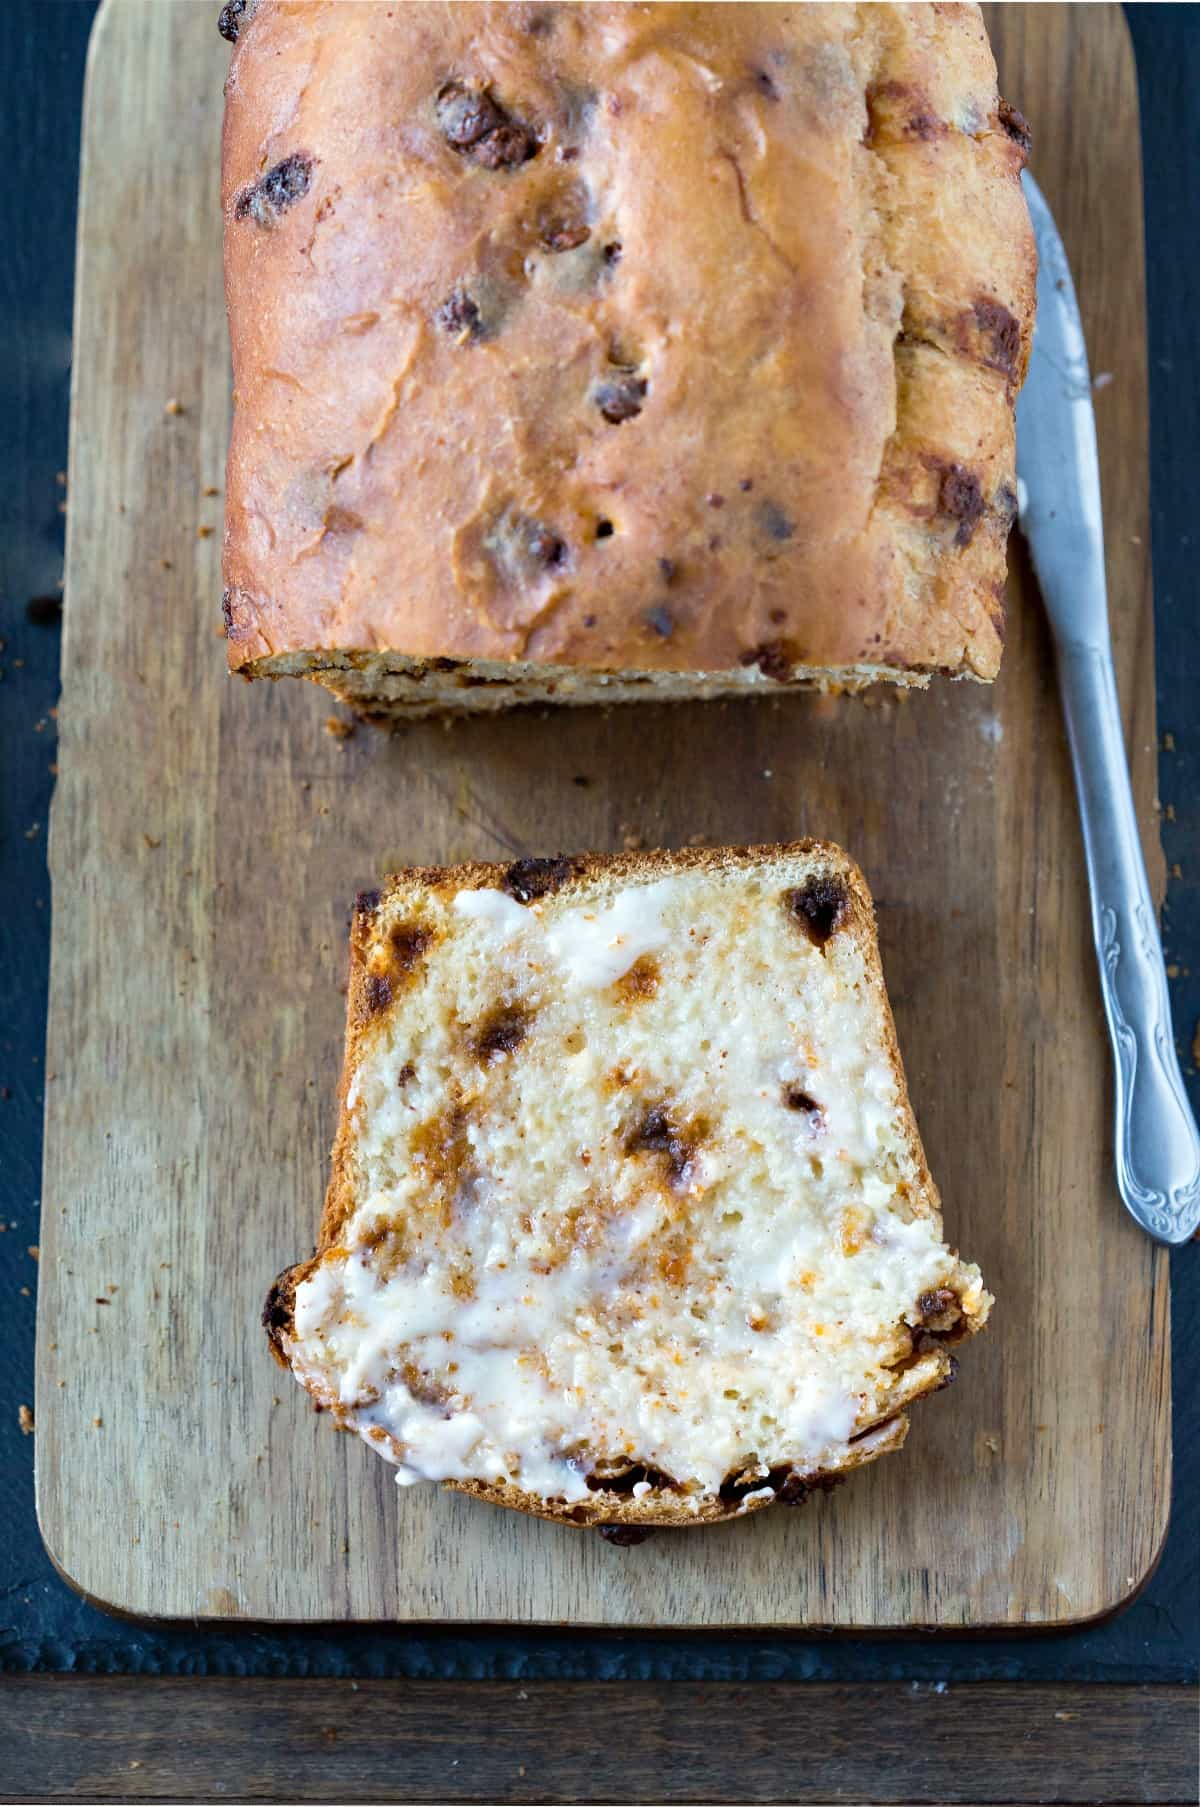 Slice of cinnamon chip bread on a wooden cutting board